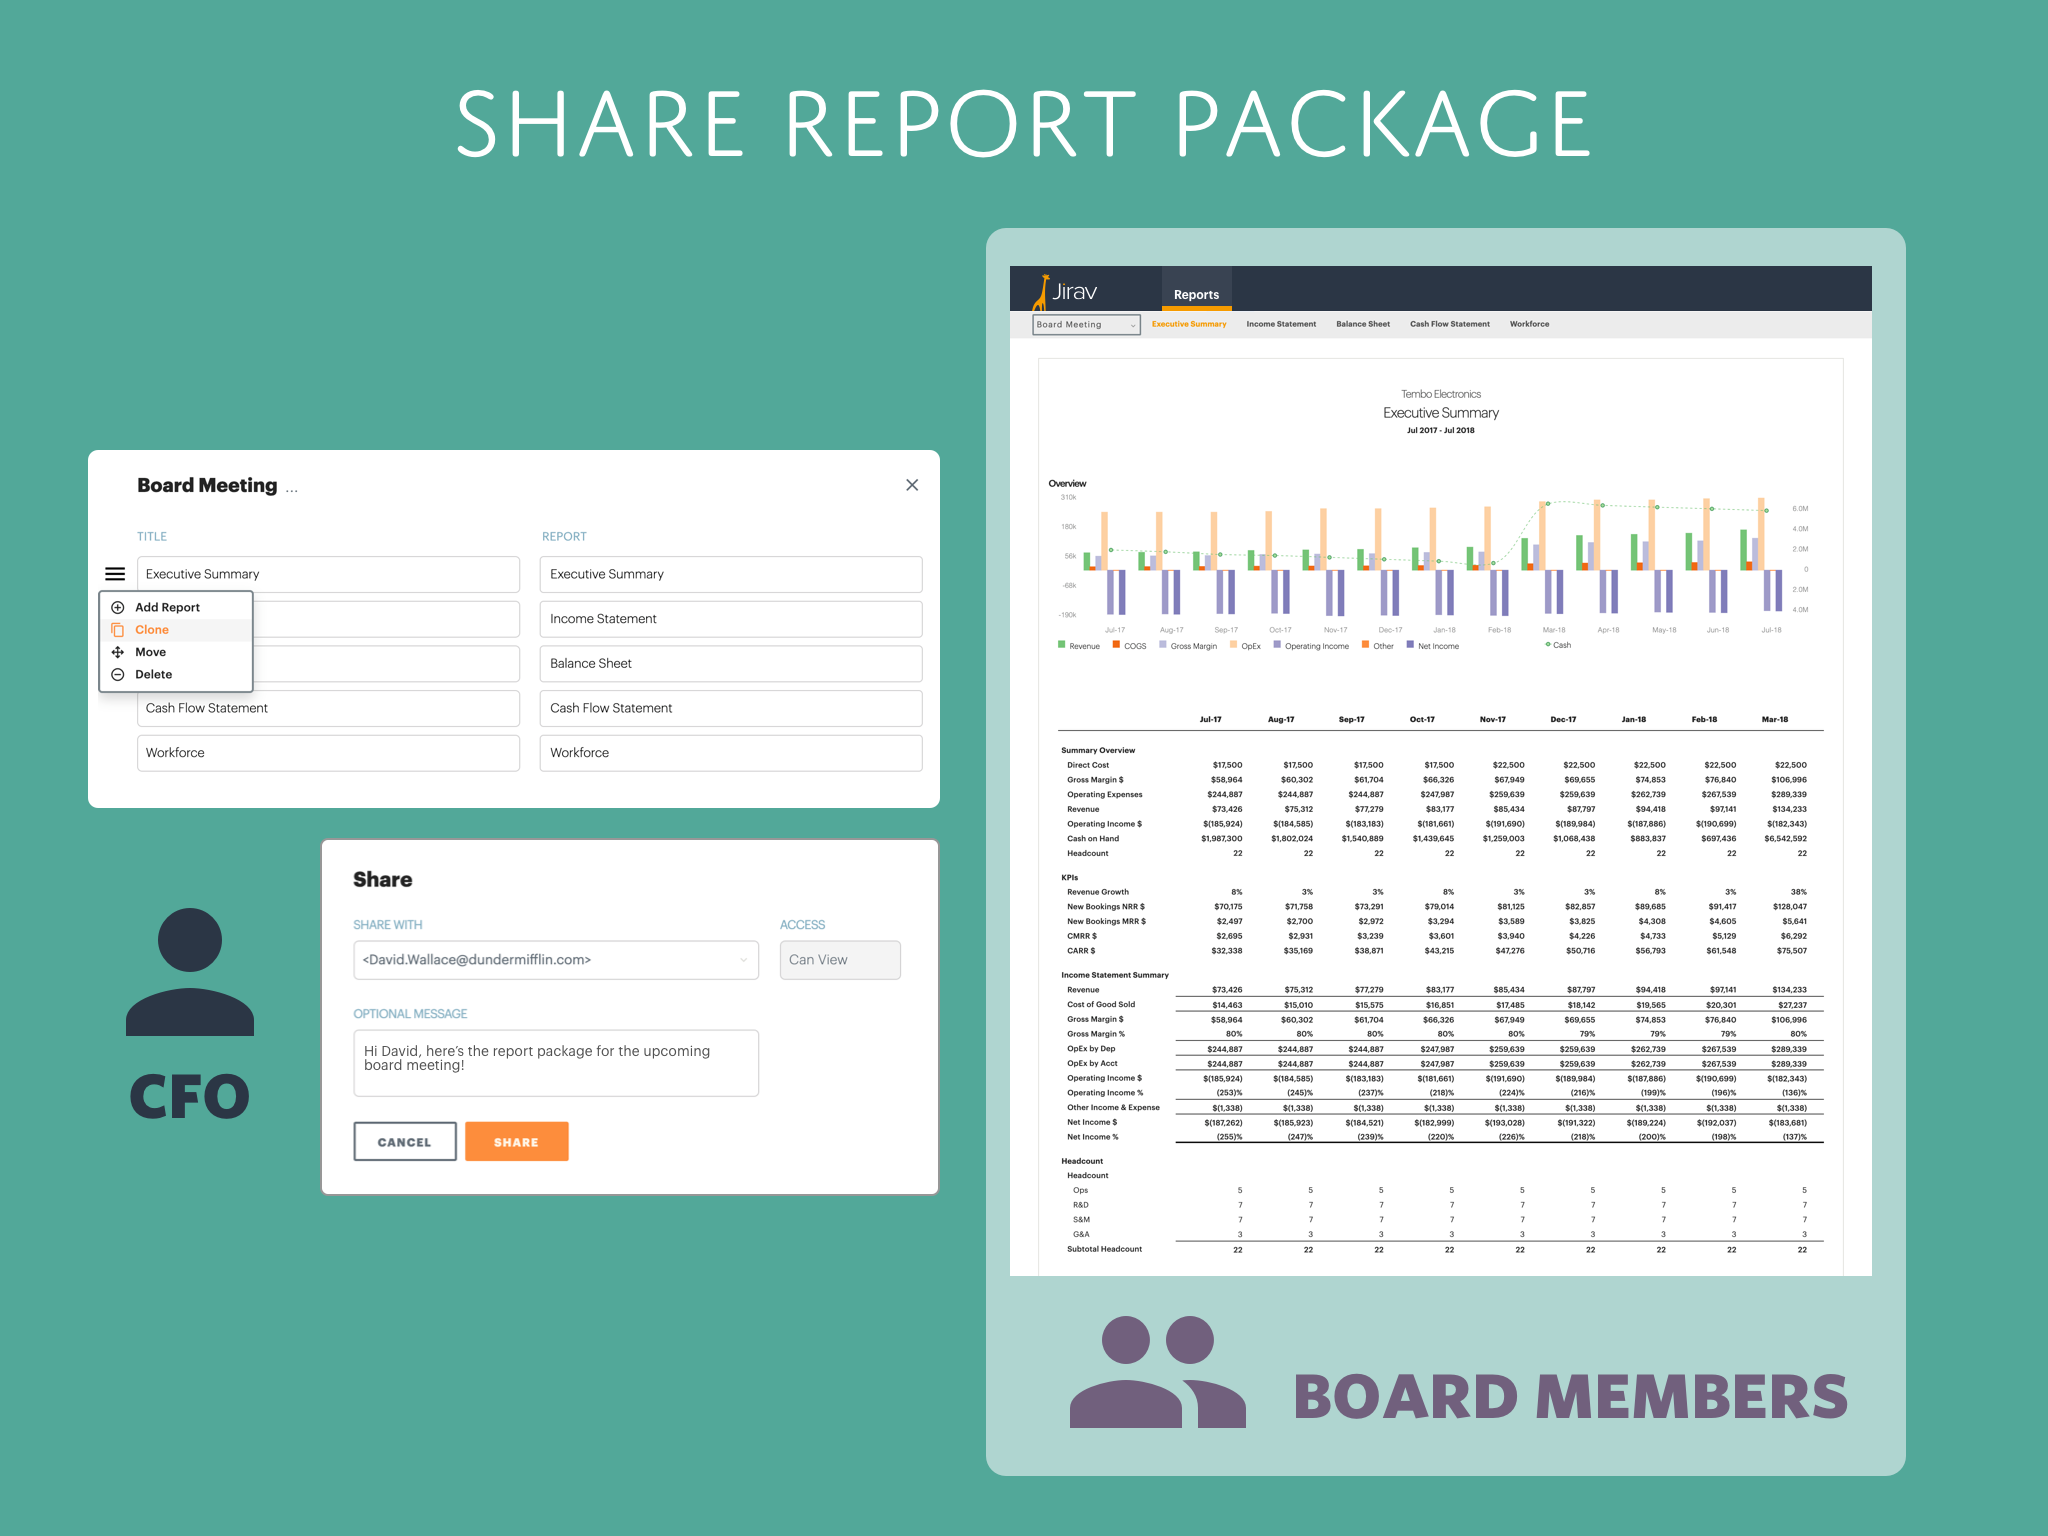 Share Report Package v2